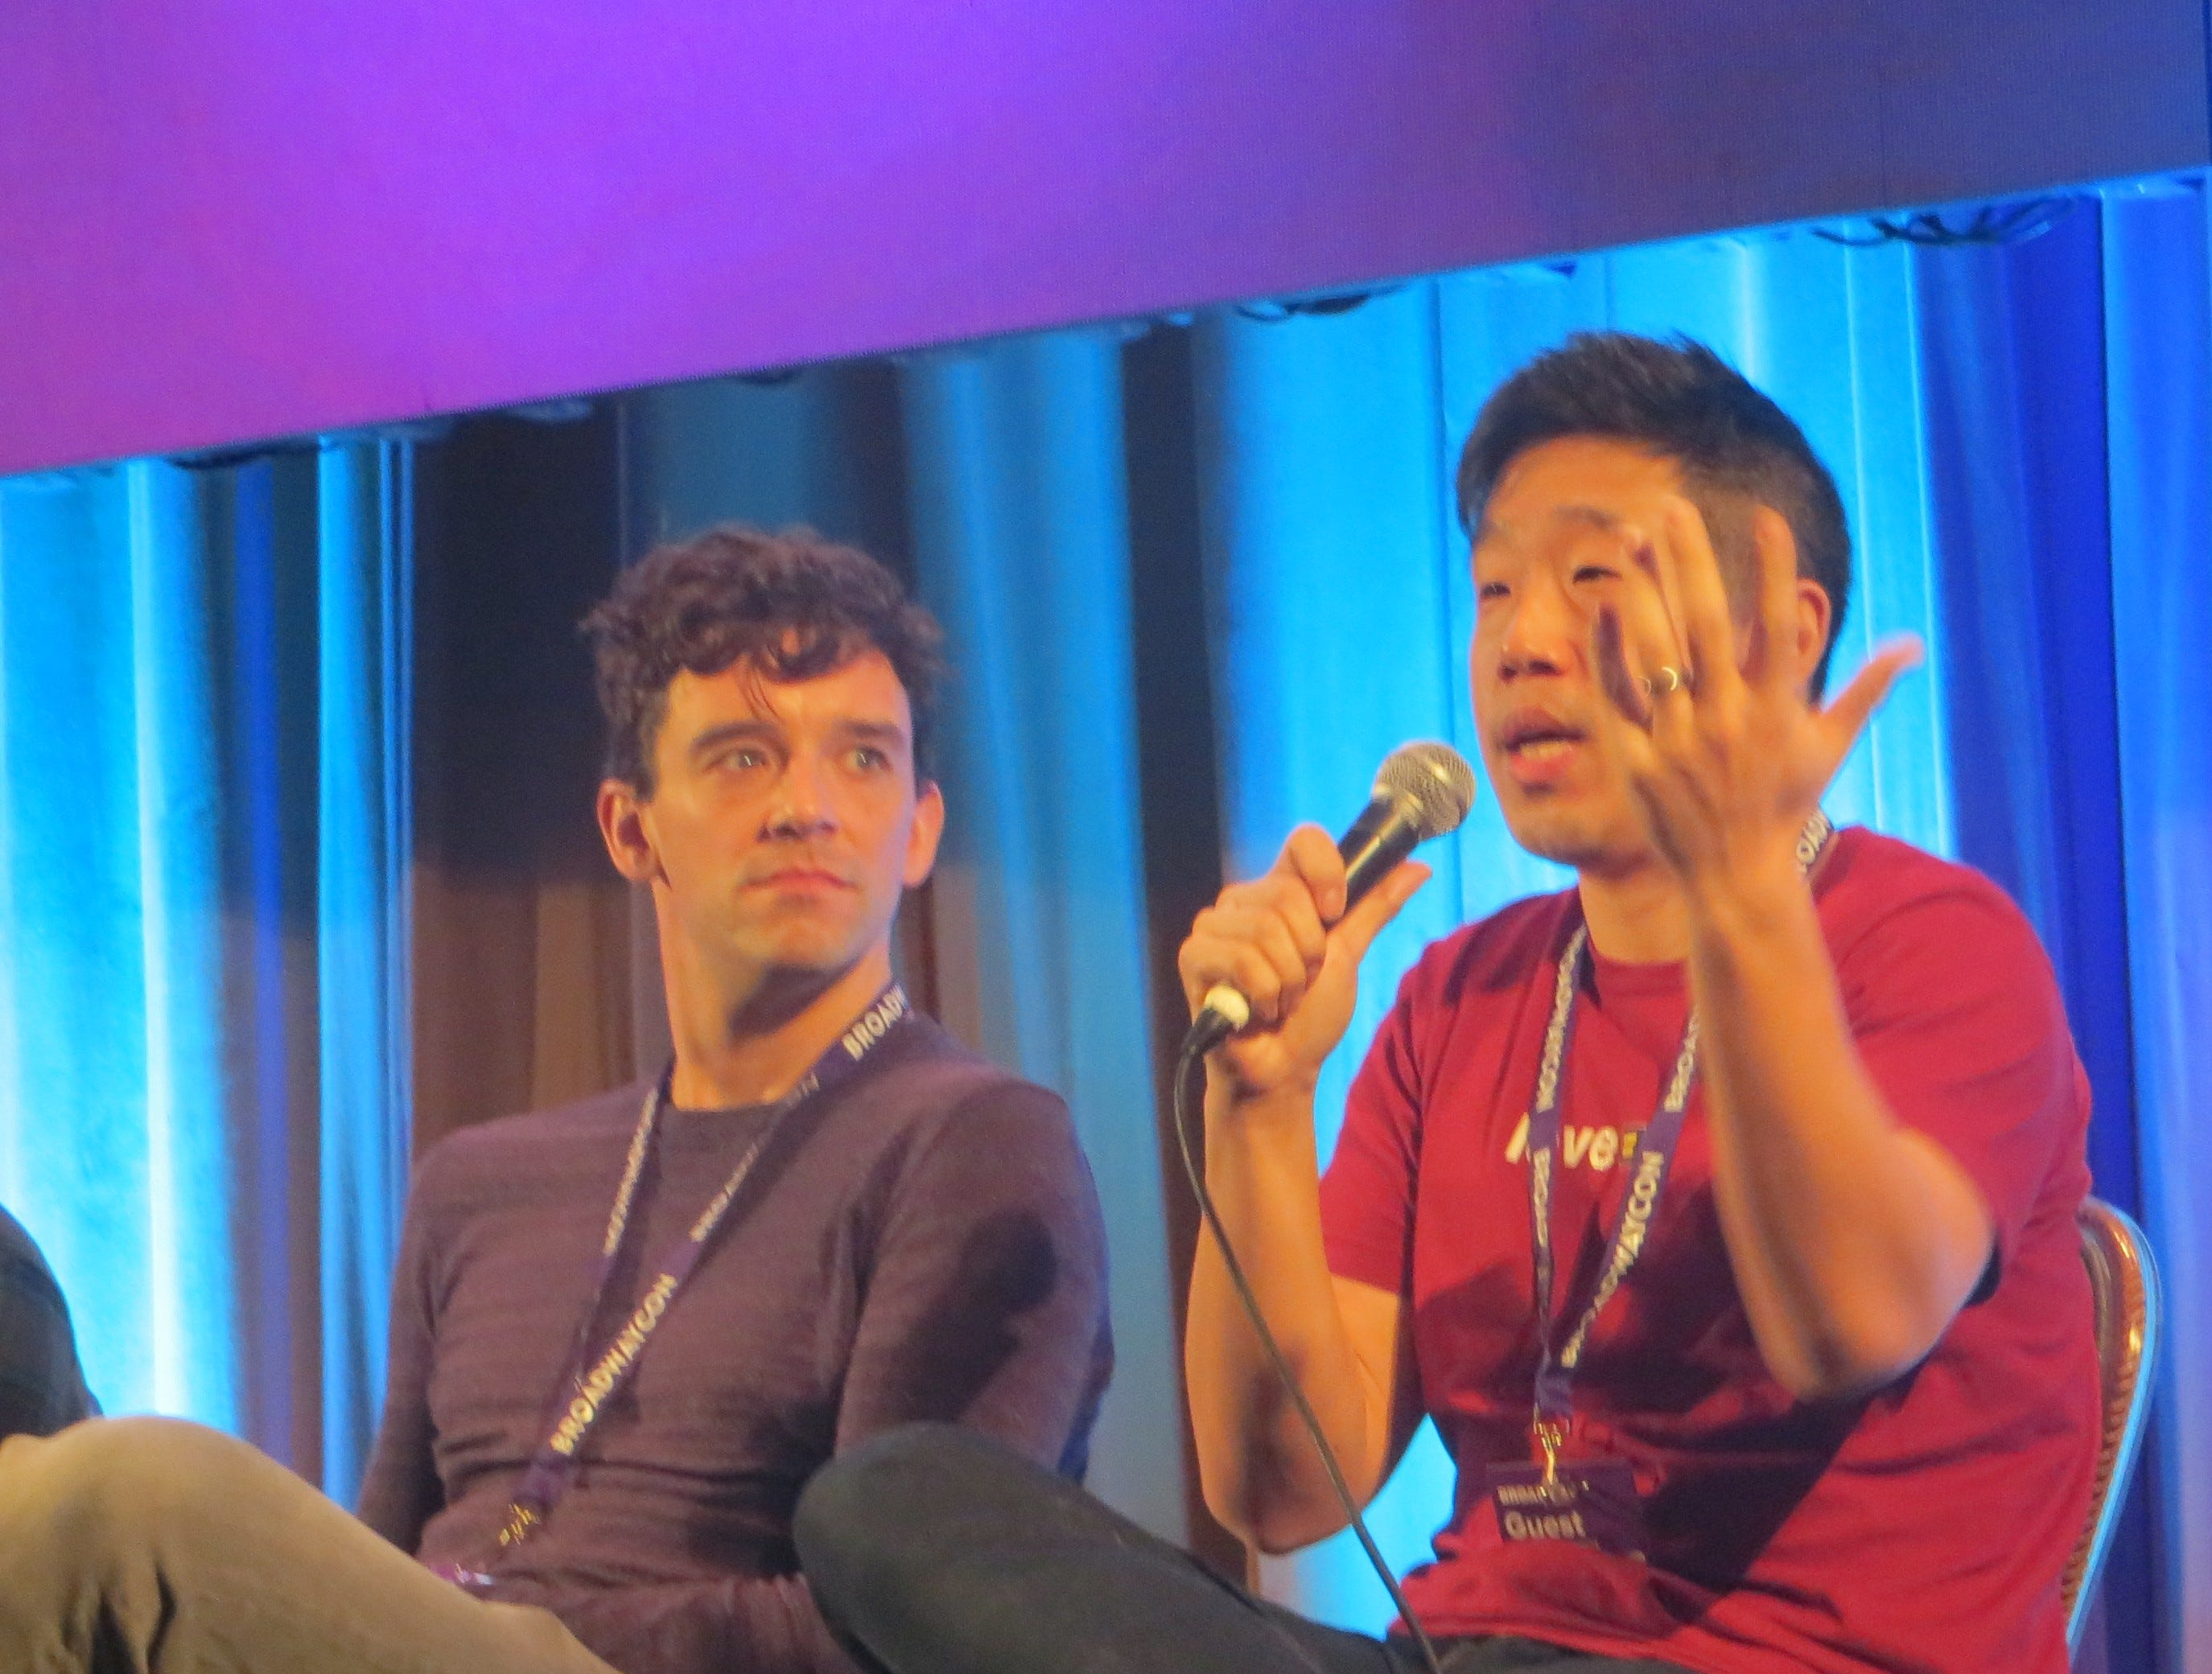 Michael Urie and Raymond Lee take part in the Out on Broadway panel at BroadwayCon 2019, held Jan. 11 to 13, 2019, at the New York Hilton Midtown in Manhattan.